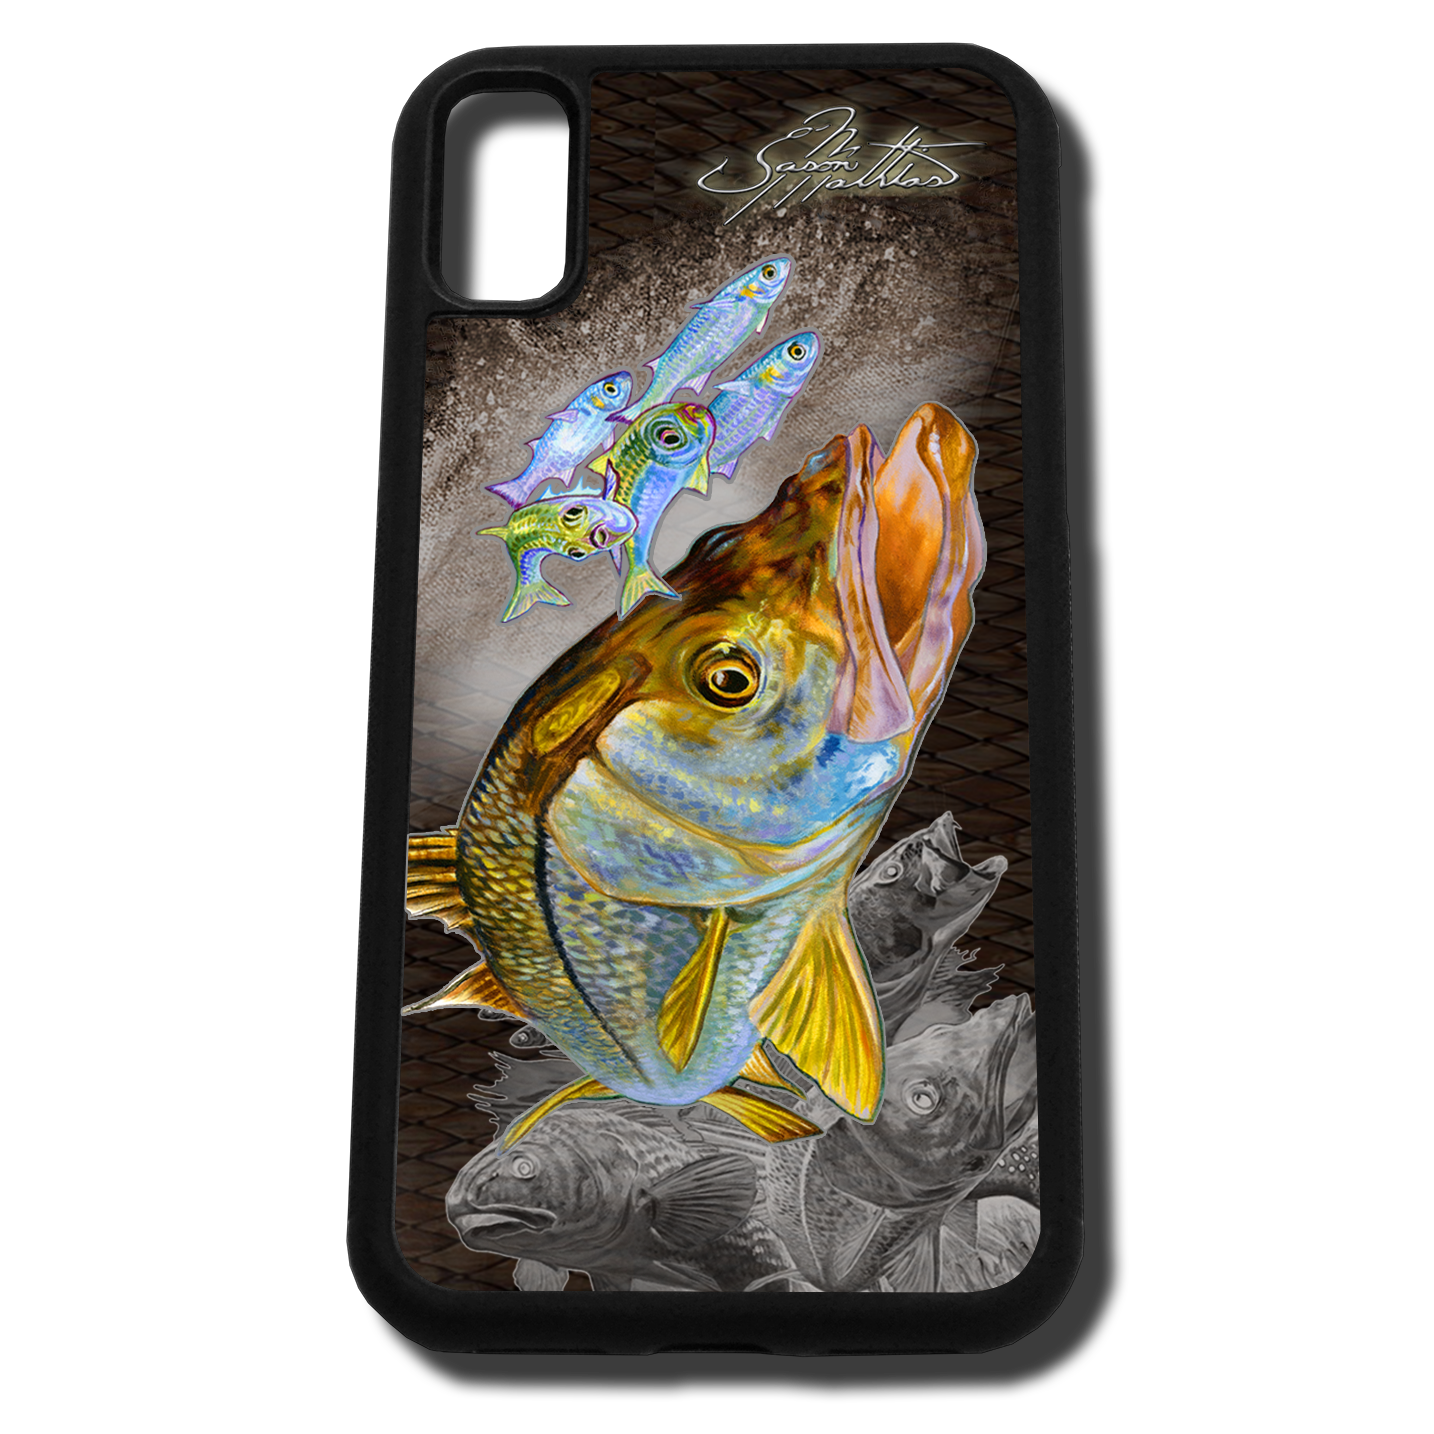 iphone-x-case-snook-it.png